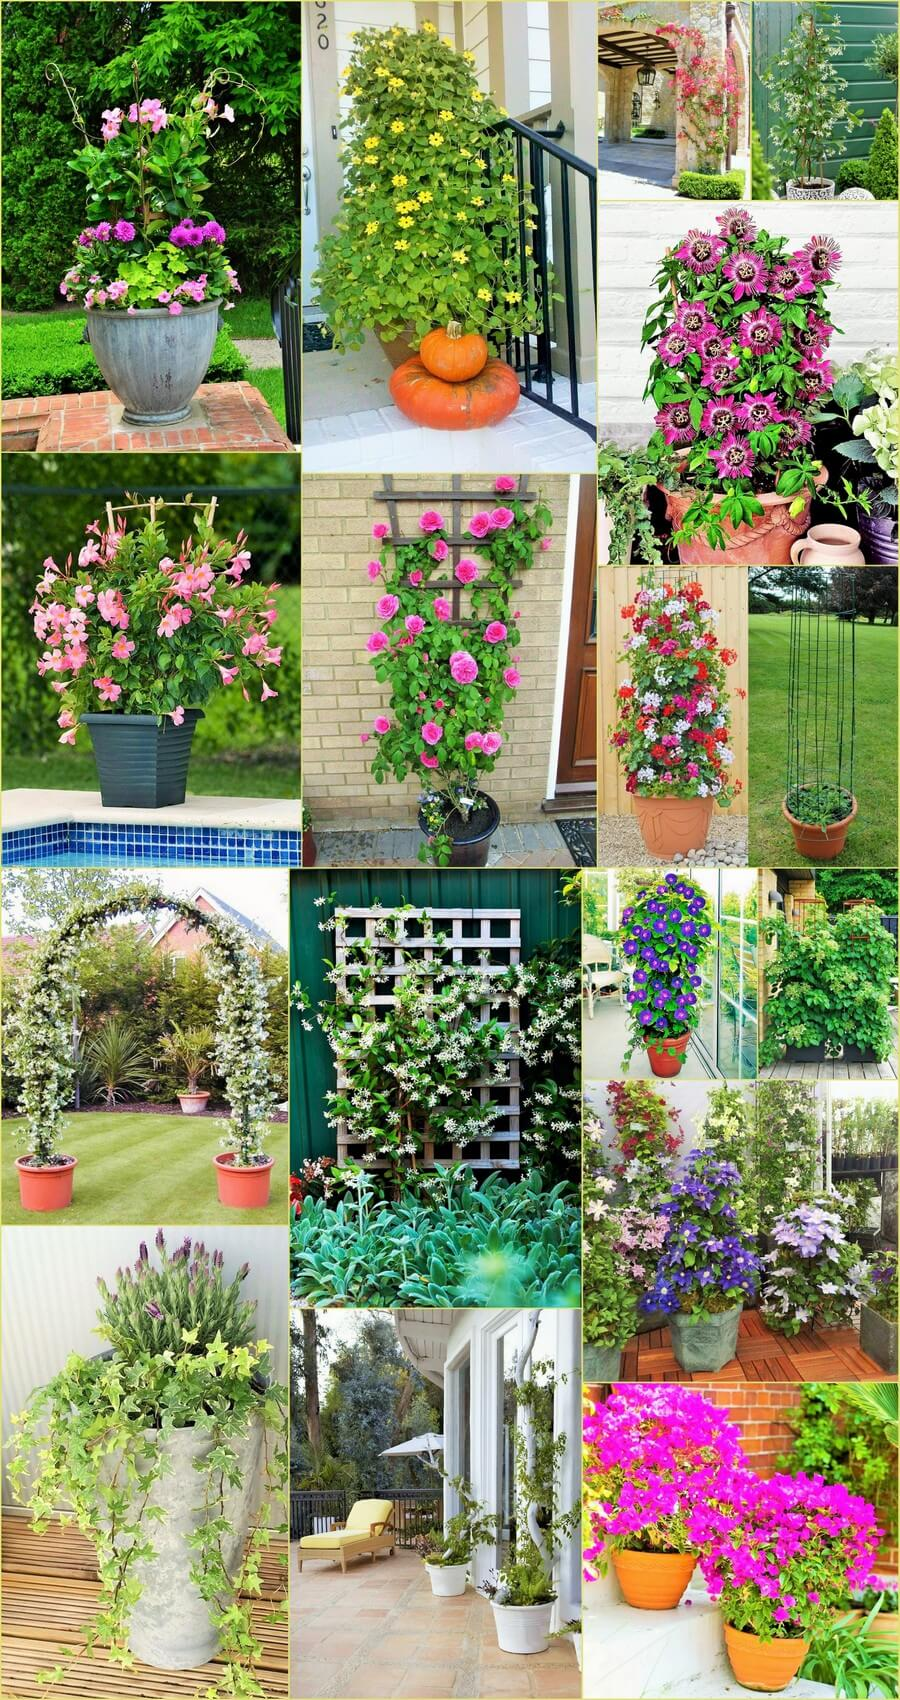 DIY Home Garden Ideas